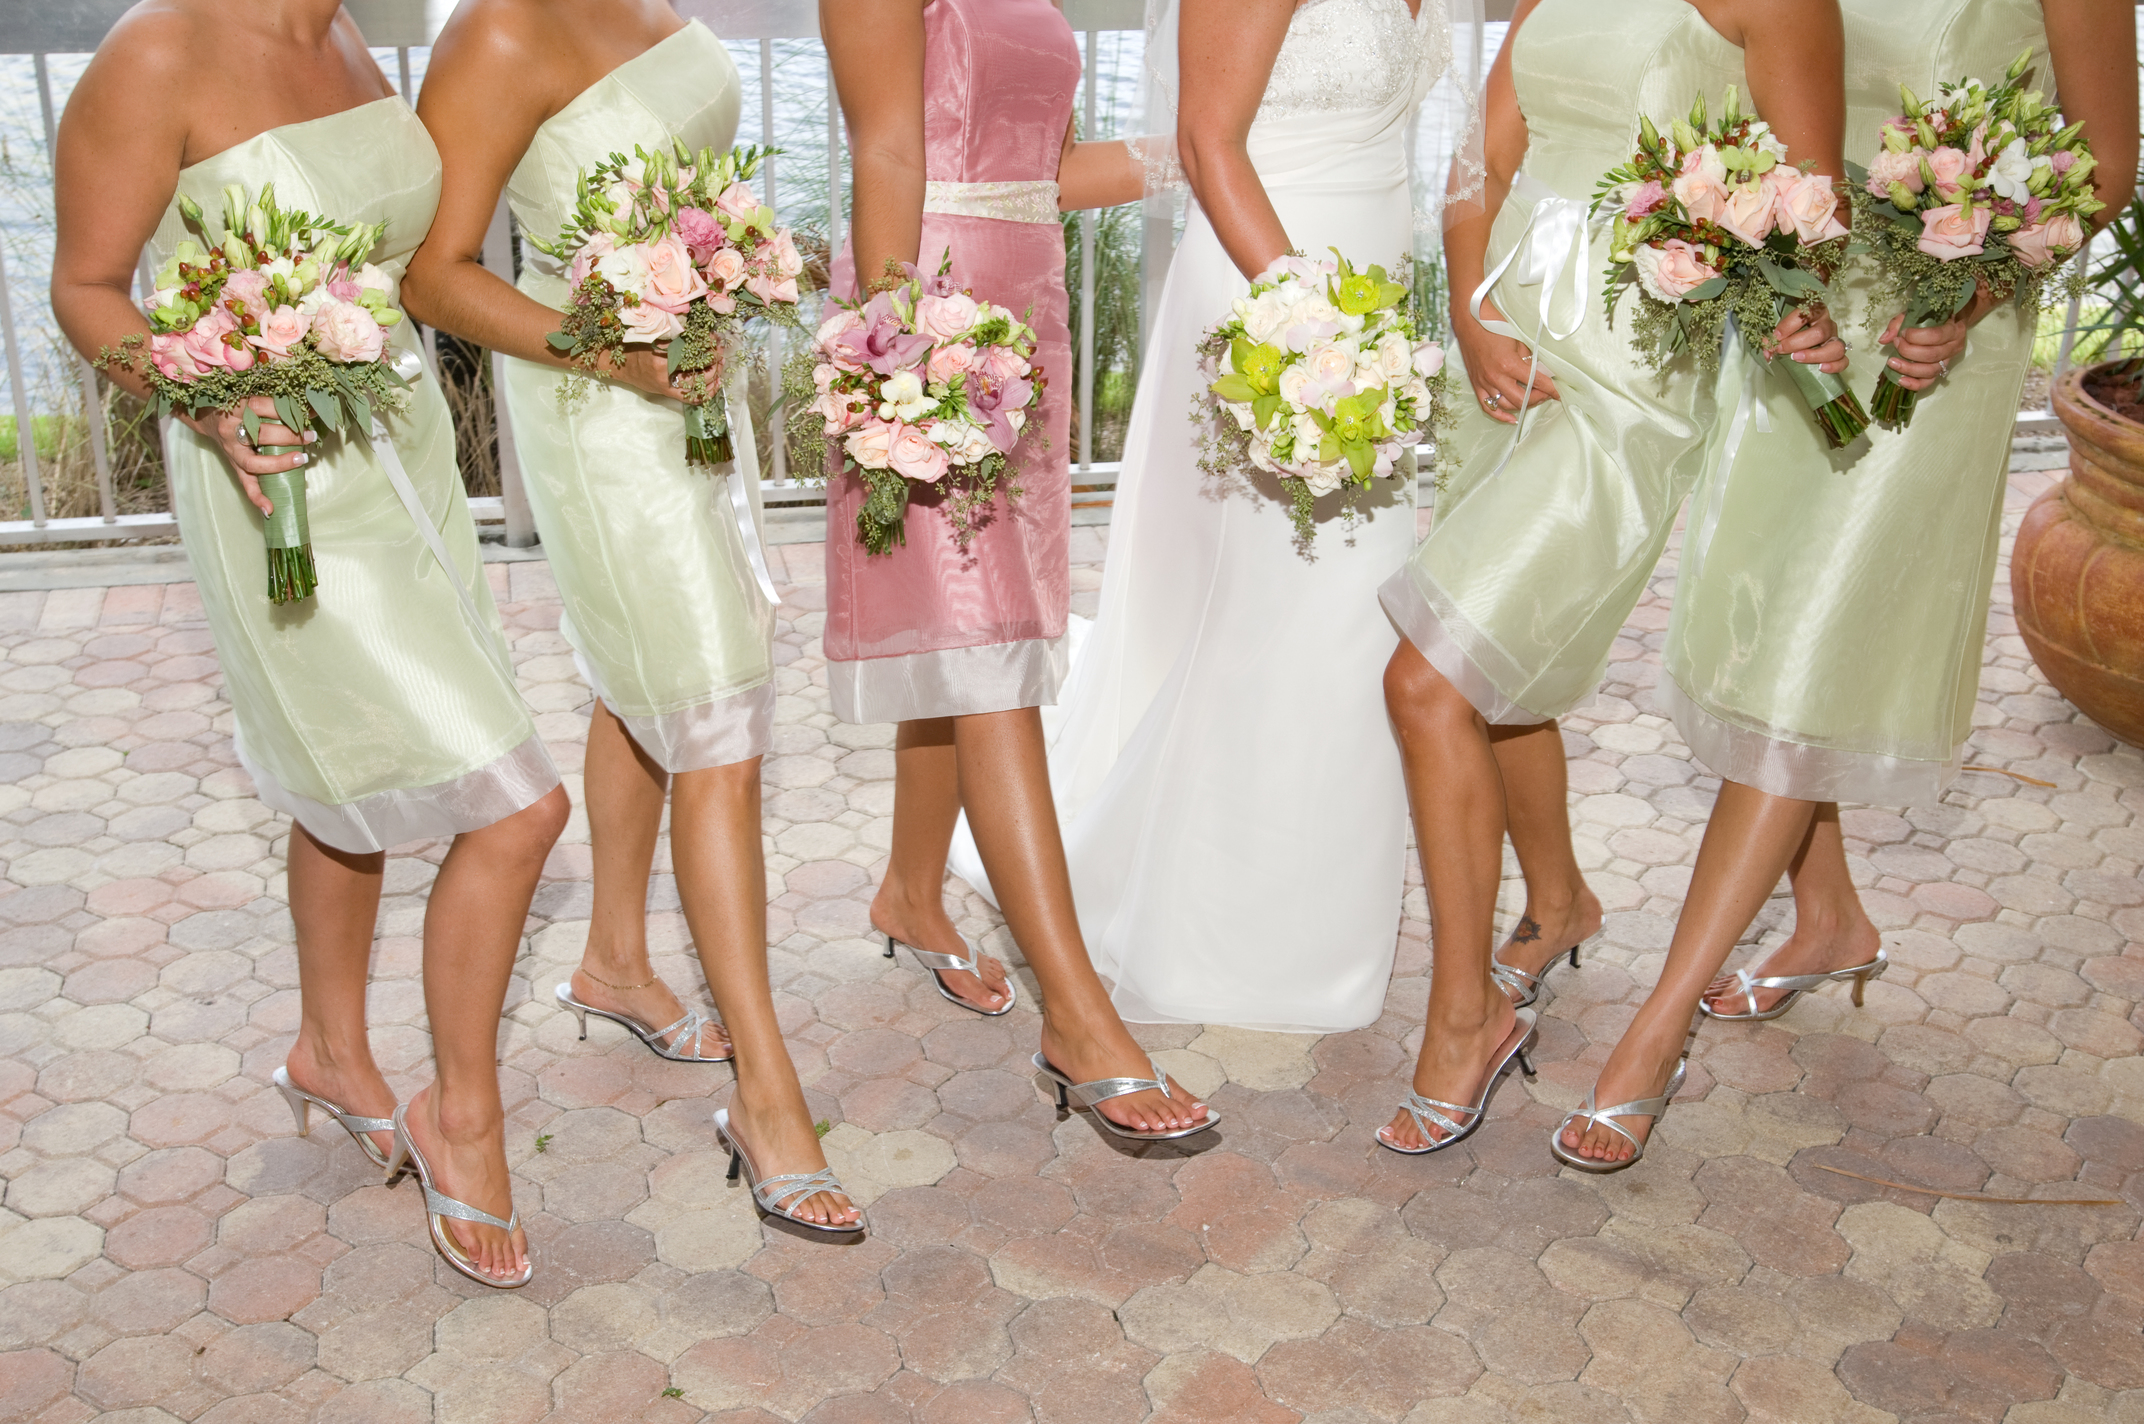 Pastel bridesmaids dresses album inspirations picture 446 pastel bridesmaids dresses ombrellifo Image collections